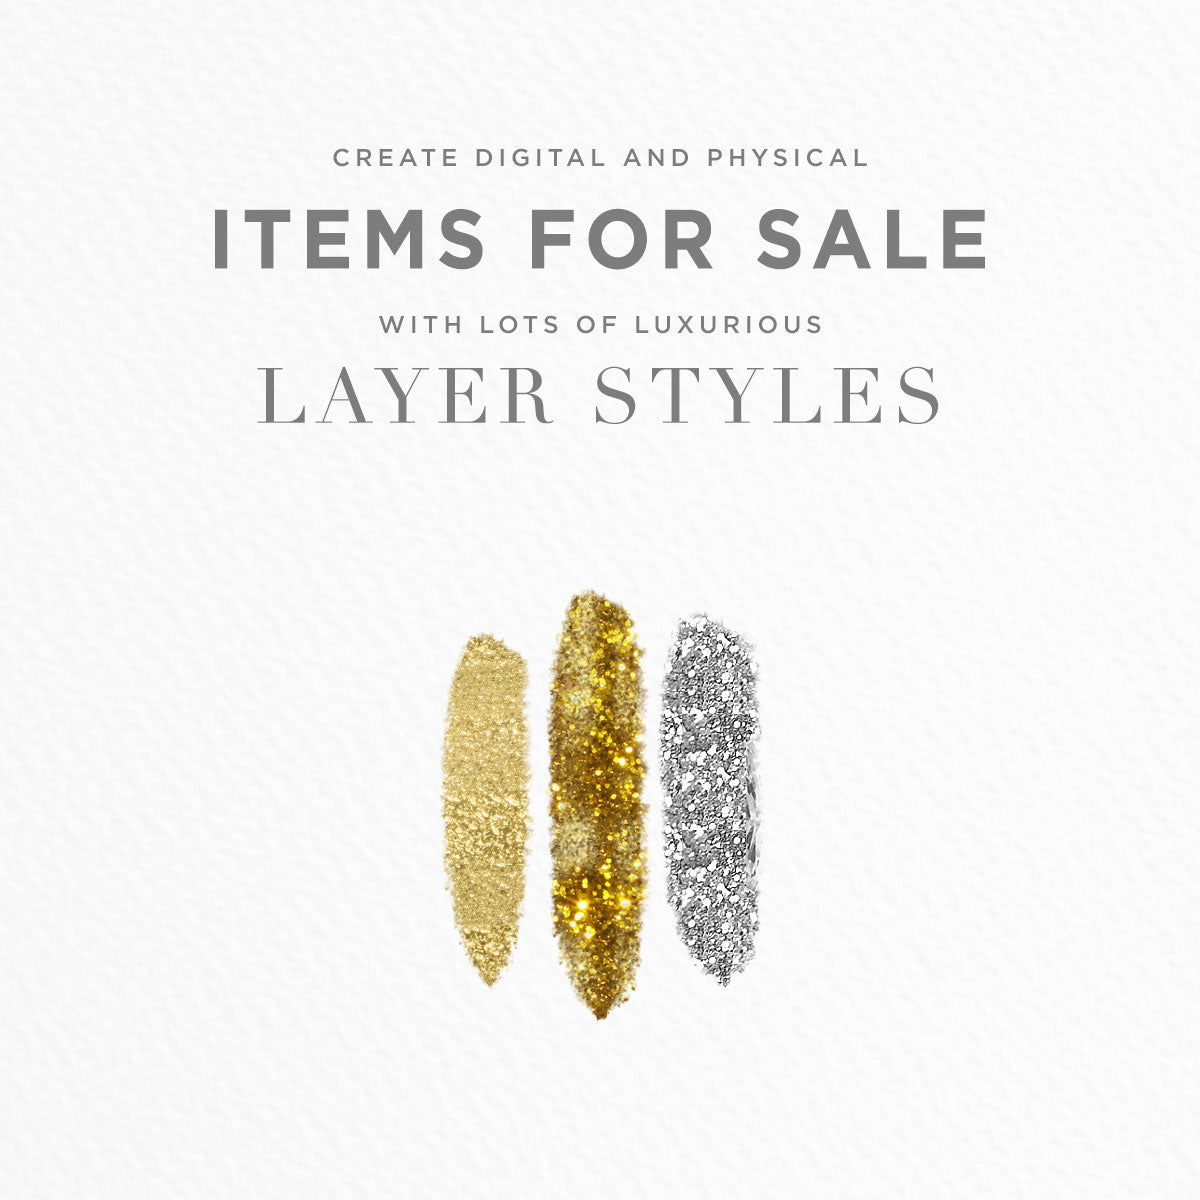 create items for sale using photoshop and illustrator layer styles